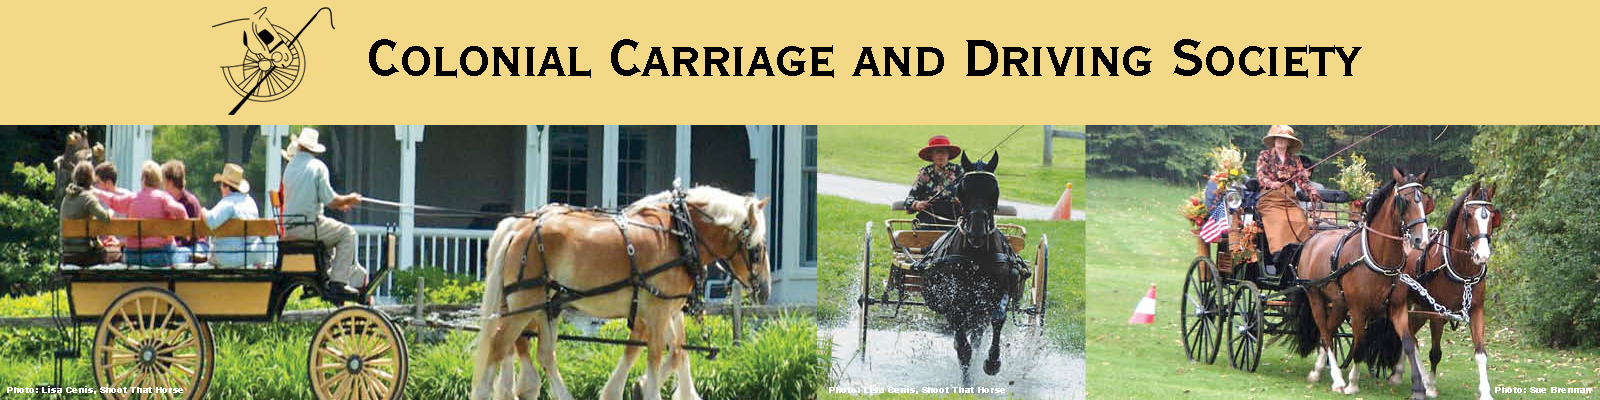 Colonial Carriage and Driving Society